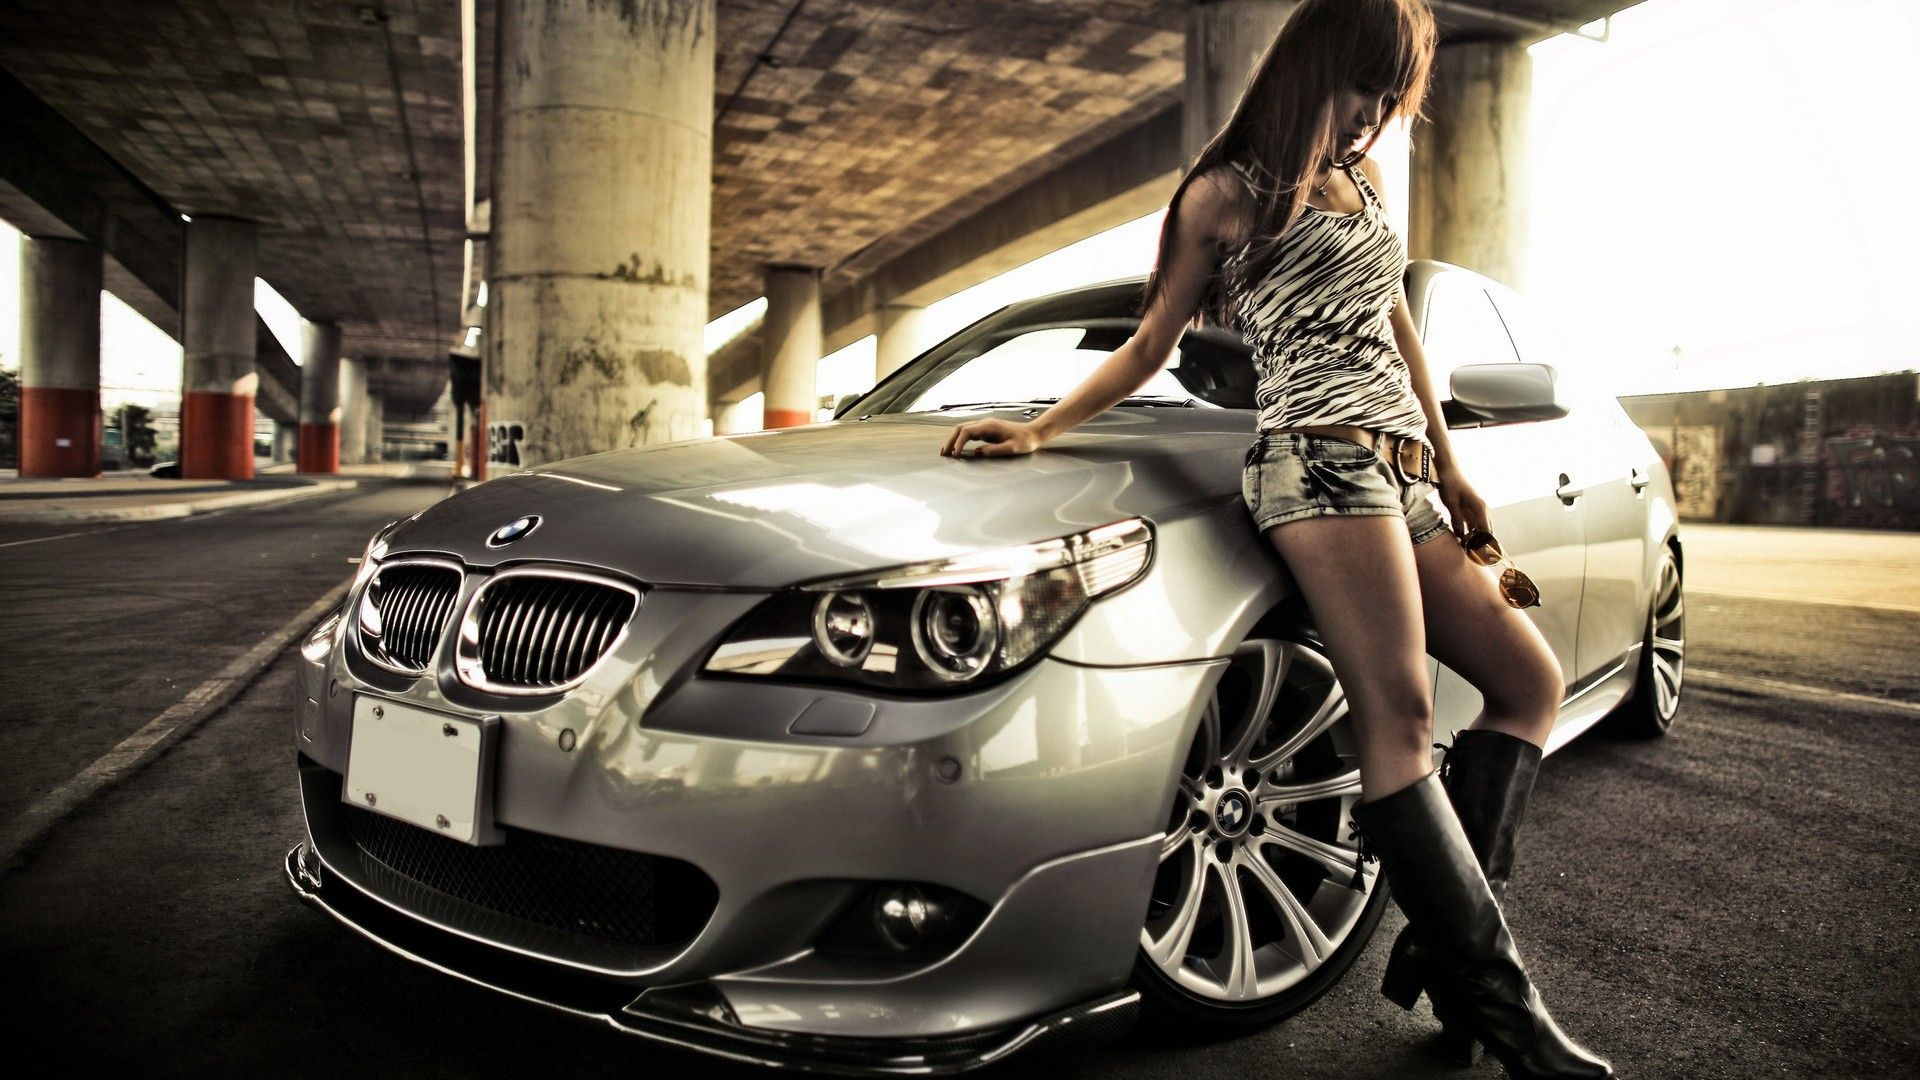 51b3431f51da135537 Jpg 1920 1080 Bmw Girl Bmw Bmw Sports Car